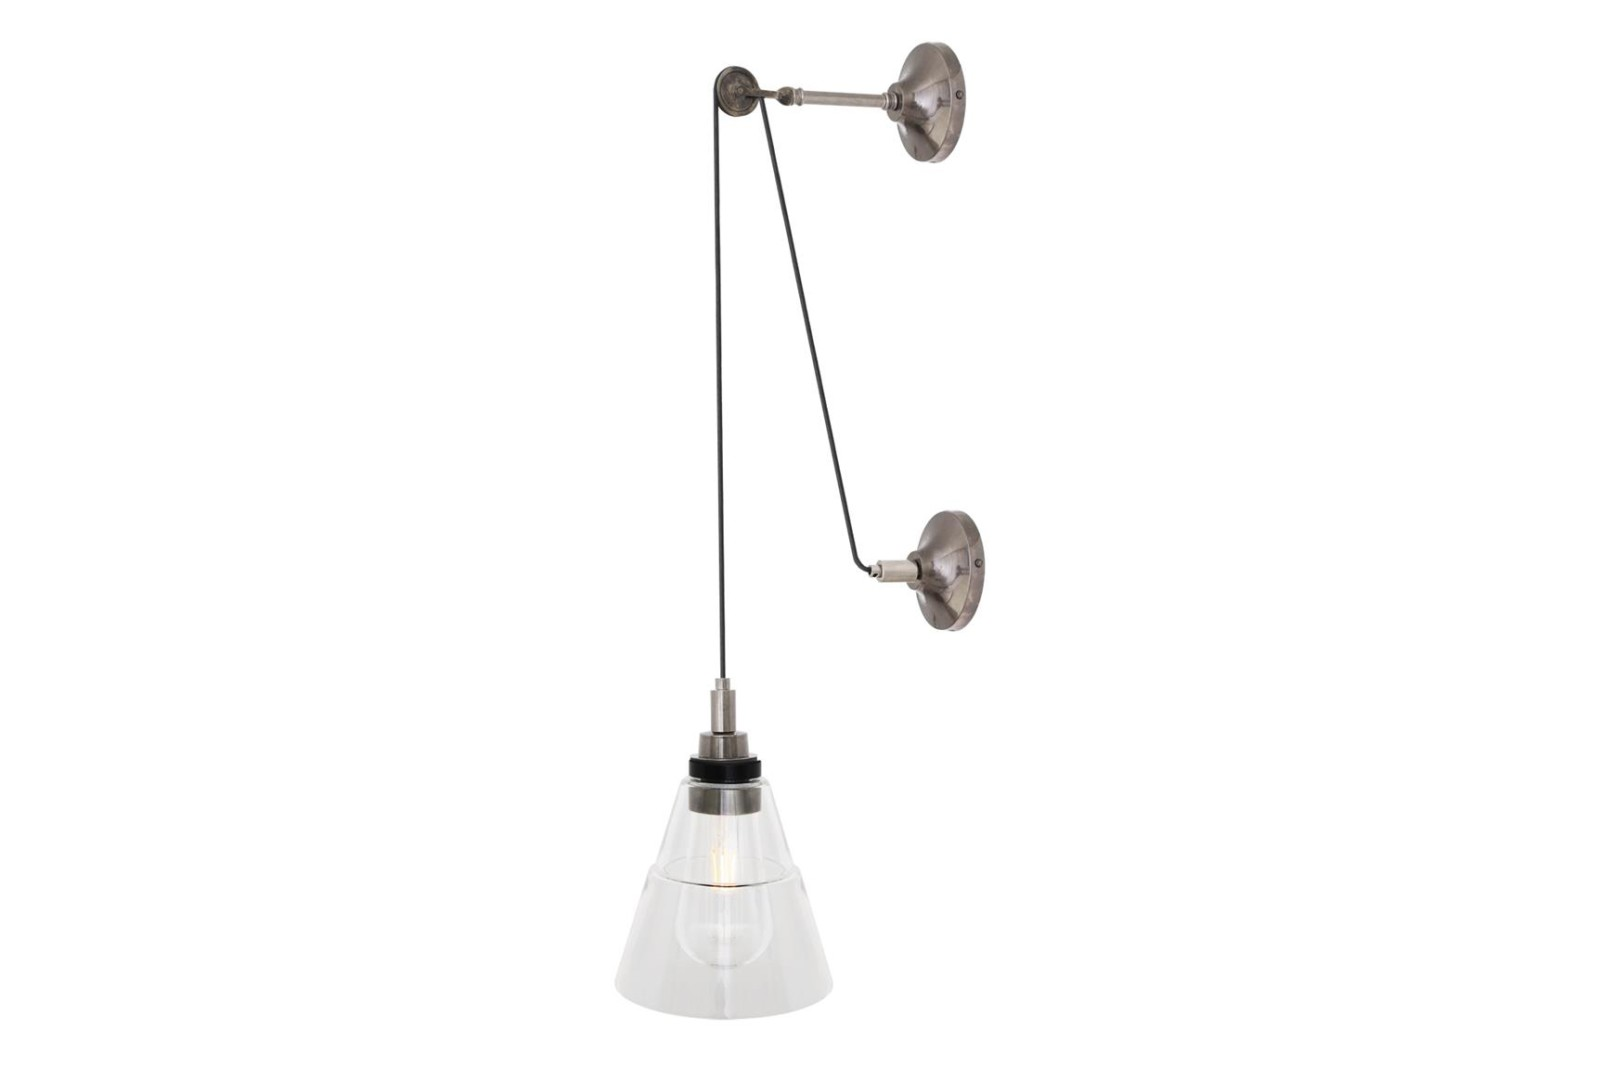 Monroe Pulley Wall Light Antique Silver